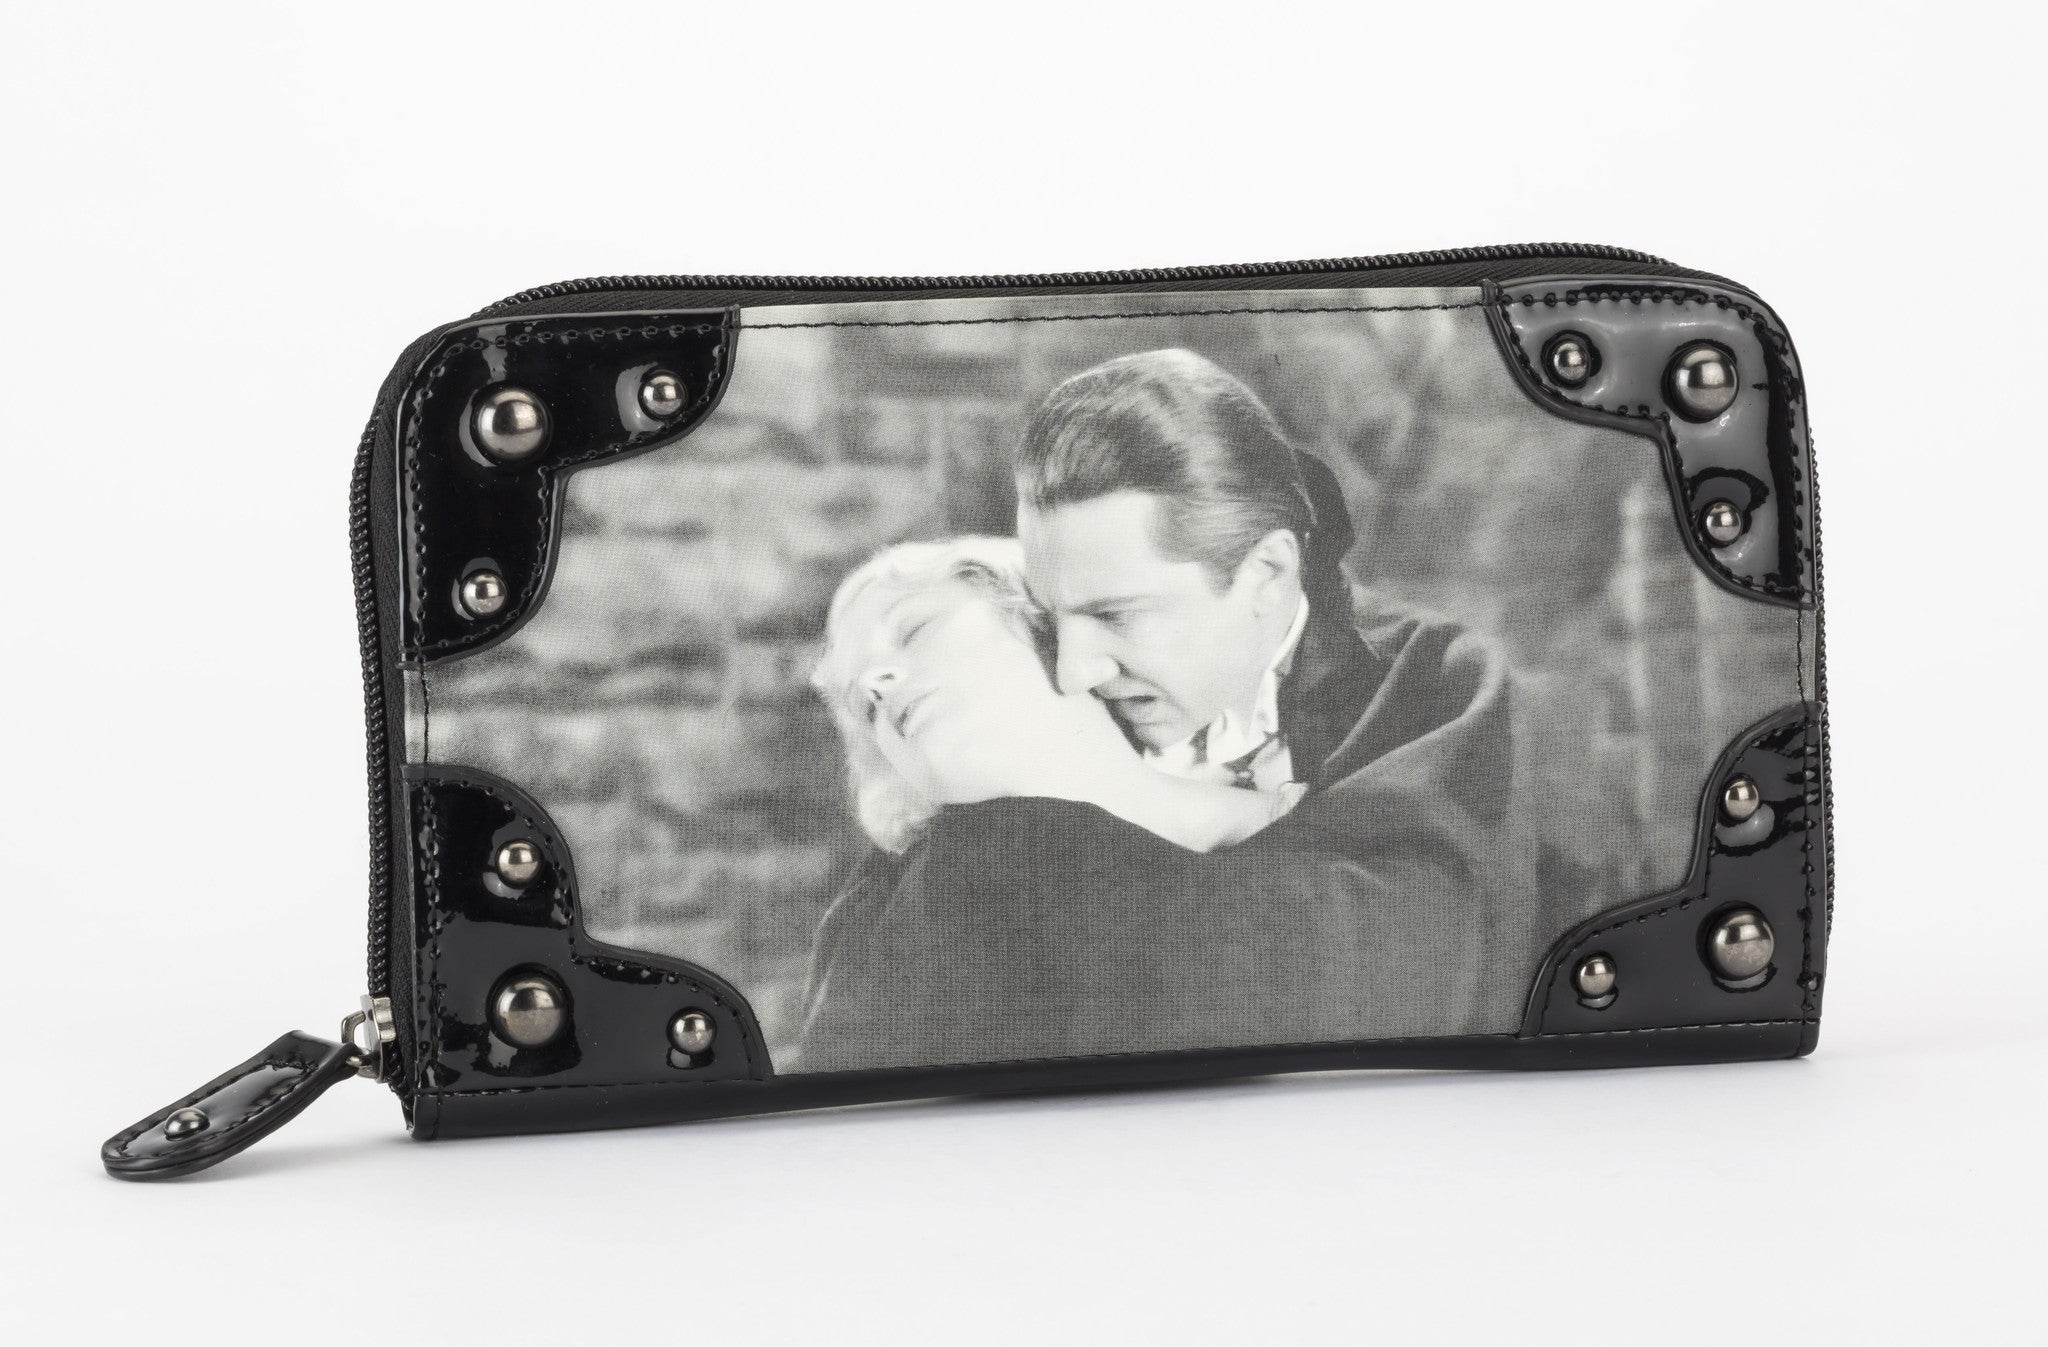 Bela Lugosi Dracula Mina Harker Wallet universal monsters rock rebel hot topic too fast sourpuss goth punk horror